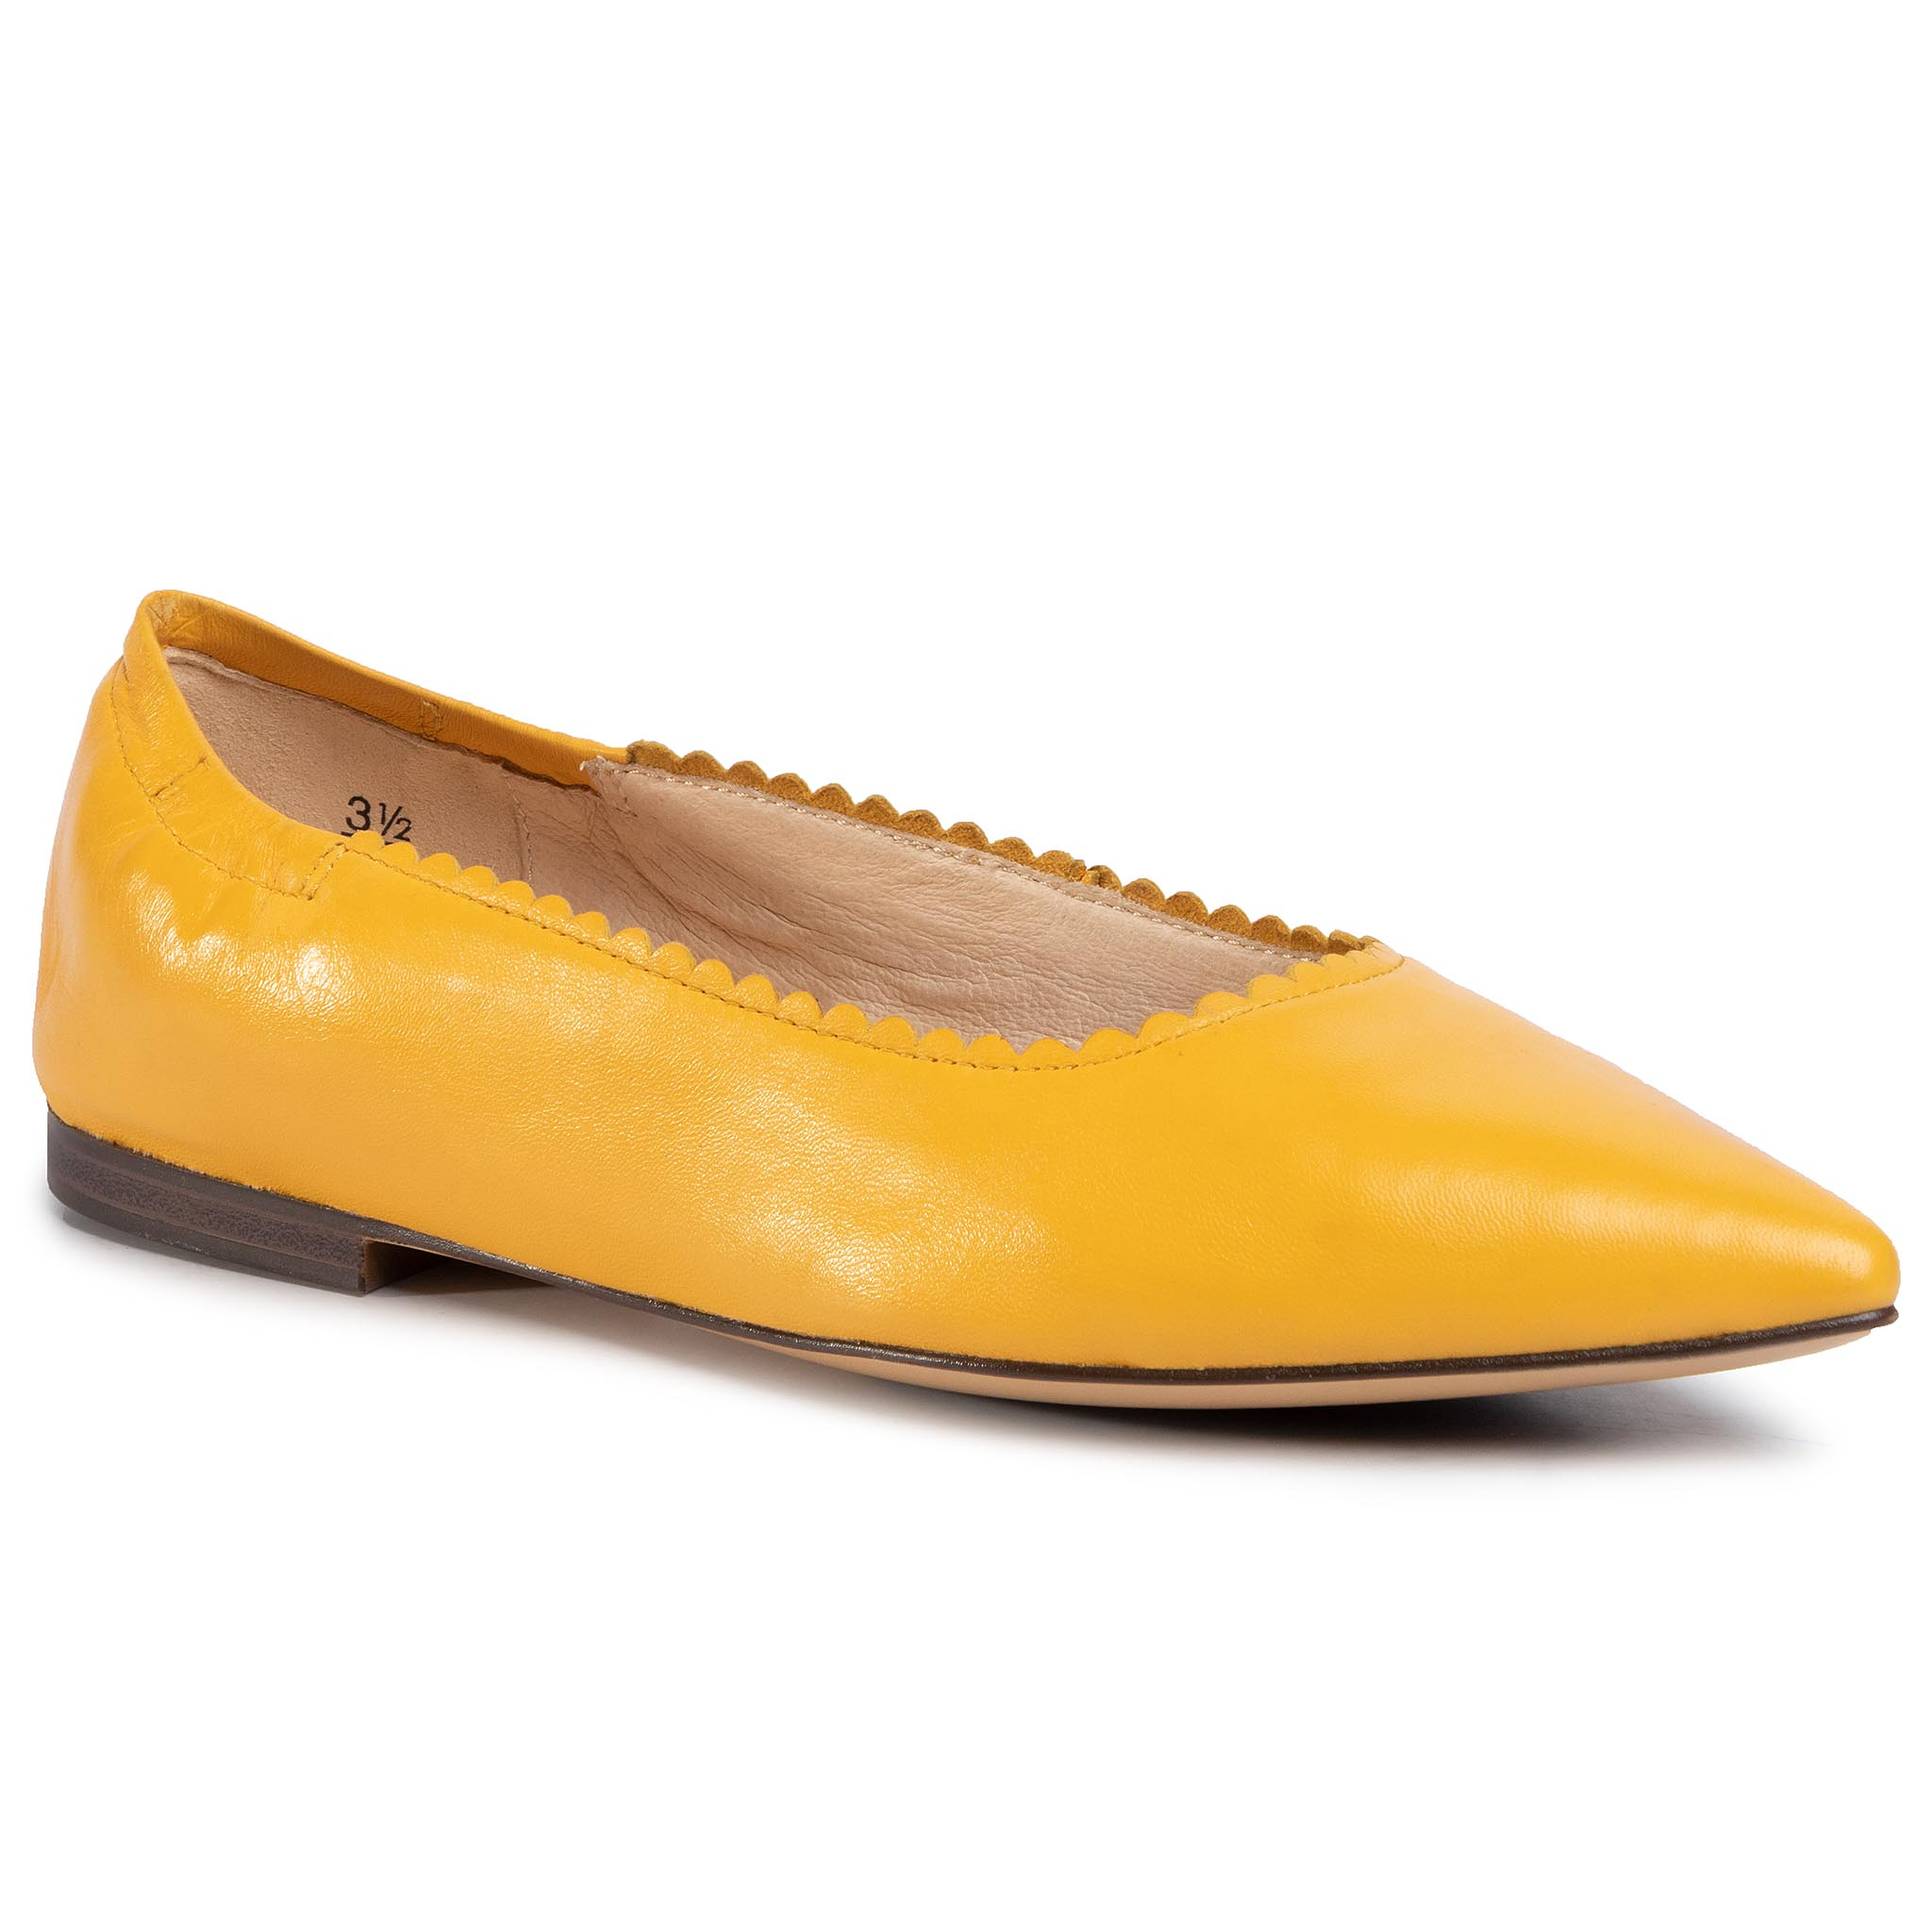 Balerini Caprice - 9-22108-24 Sunflower Soft 620 imagine epantofi.ro